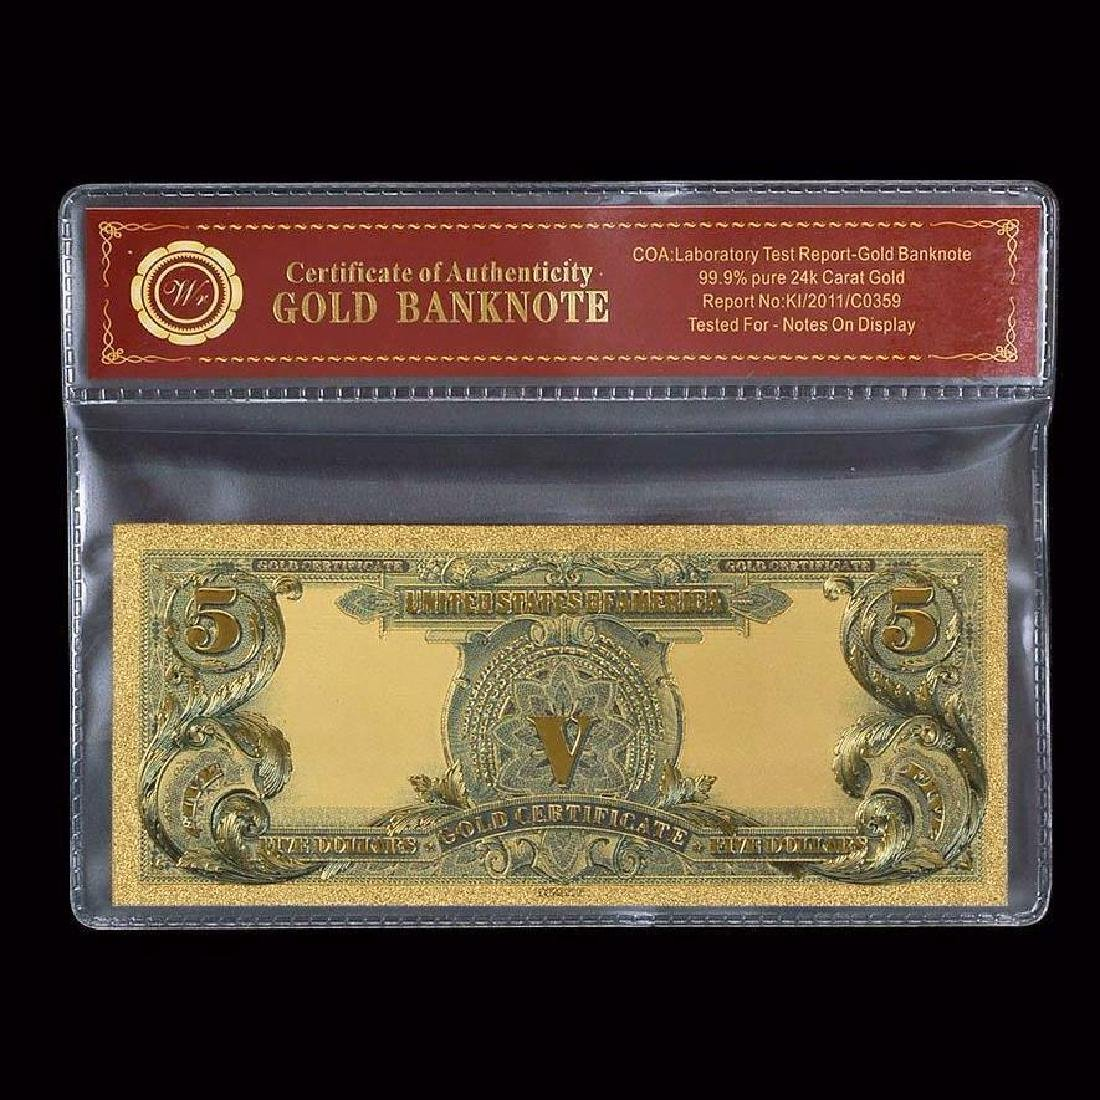 USA $5 24K Gold Clad Banknote - 2